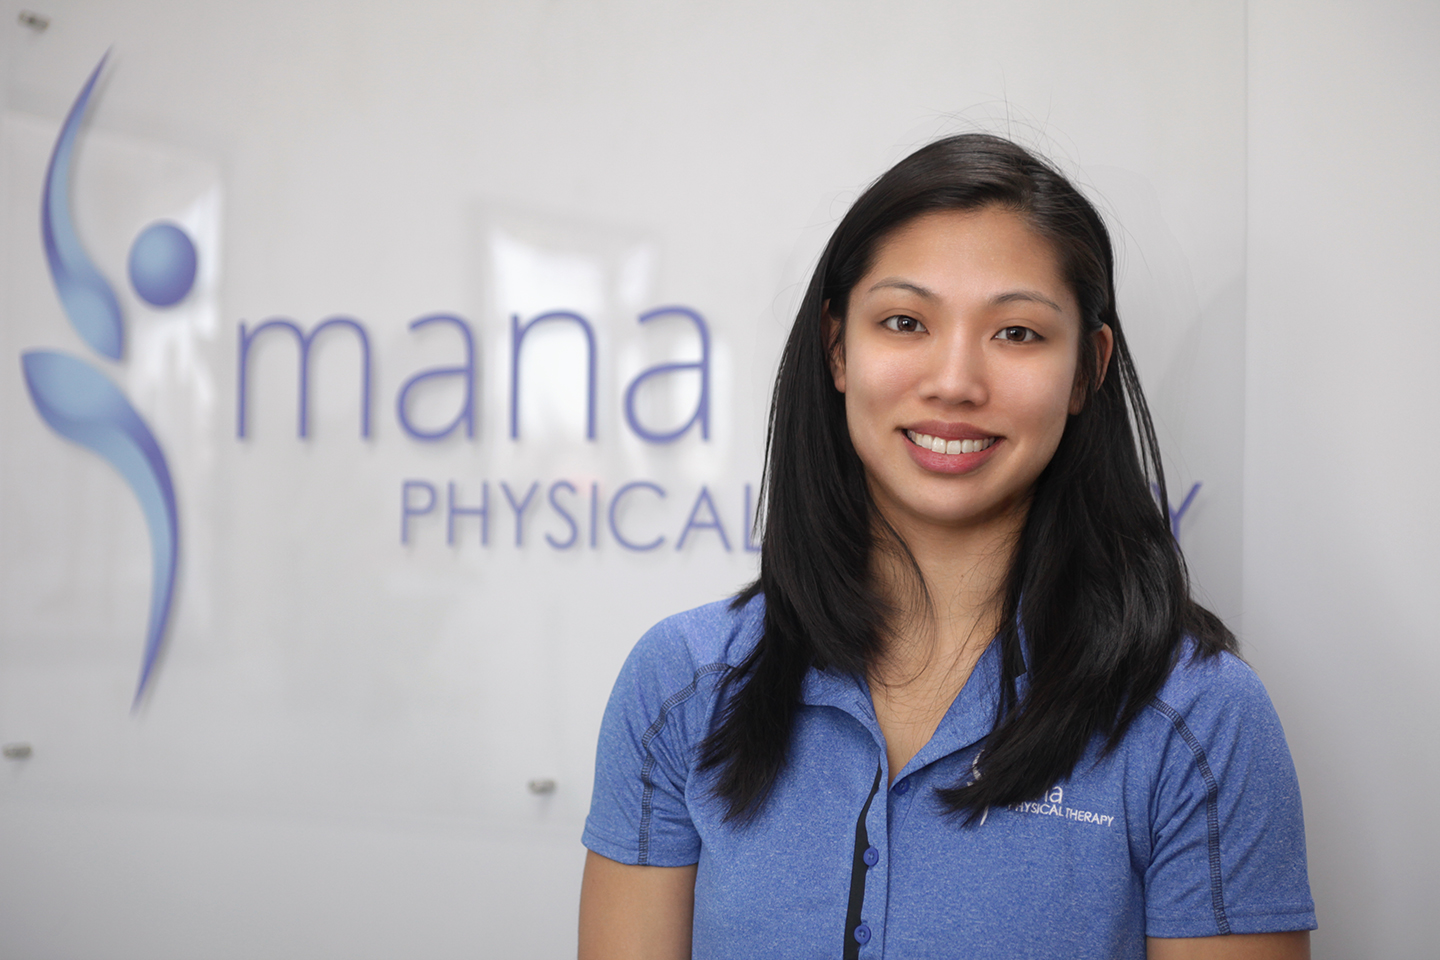 %name Meet Danielle Mitko, Our New Physical Therapist